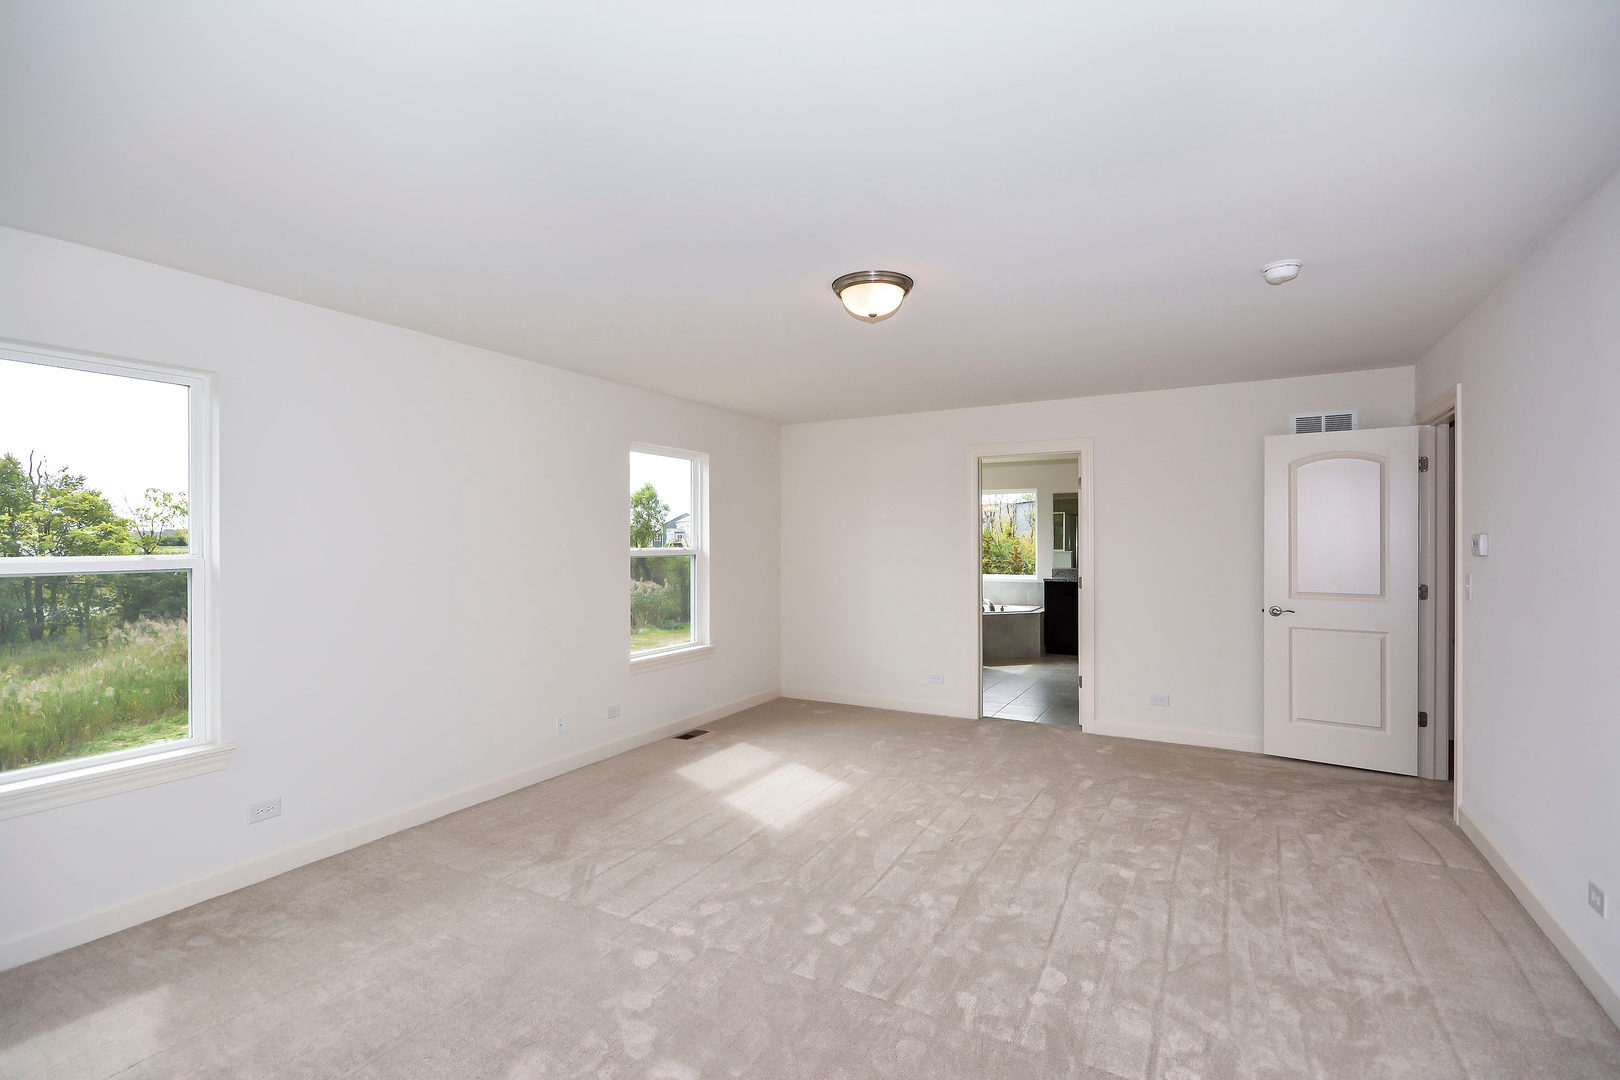 2 West Peter Lane, Hawthorn Woods, IL Single Family Home Property ...